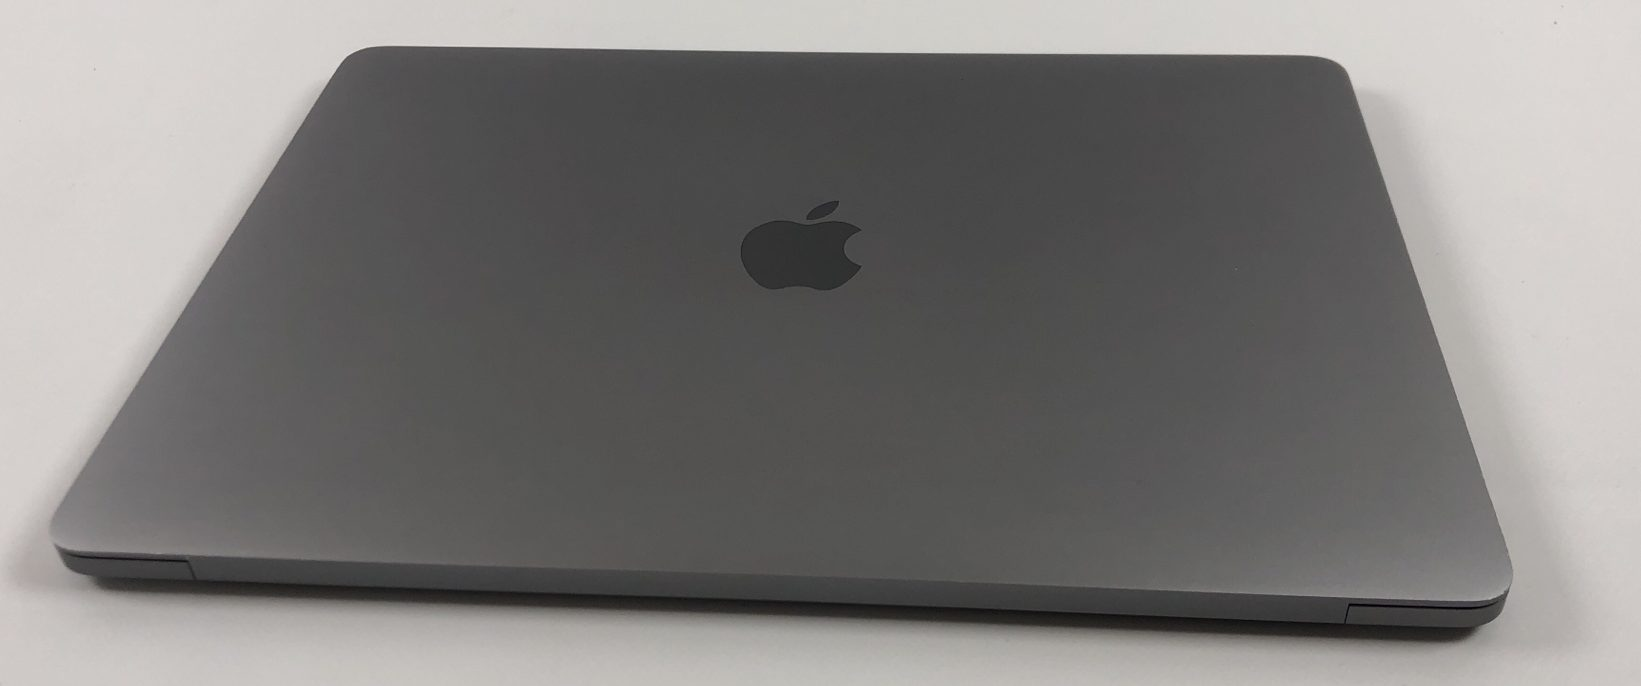 "MacBook Pro 13"" 4TBT Late 2016 (Intel Core i5 2.9 GHz 8 GB RAM 512 GB SSD), Space Gray, Intel Core i5 2.9 GHz, 8 GB RAM, 512 GB SSD, bild 2"